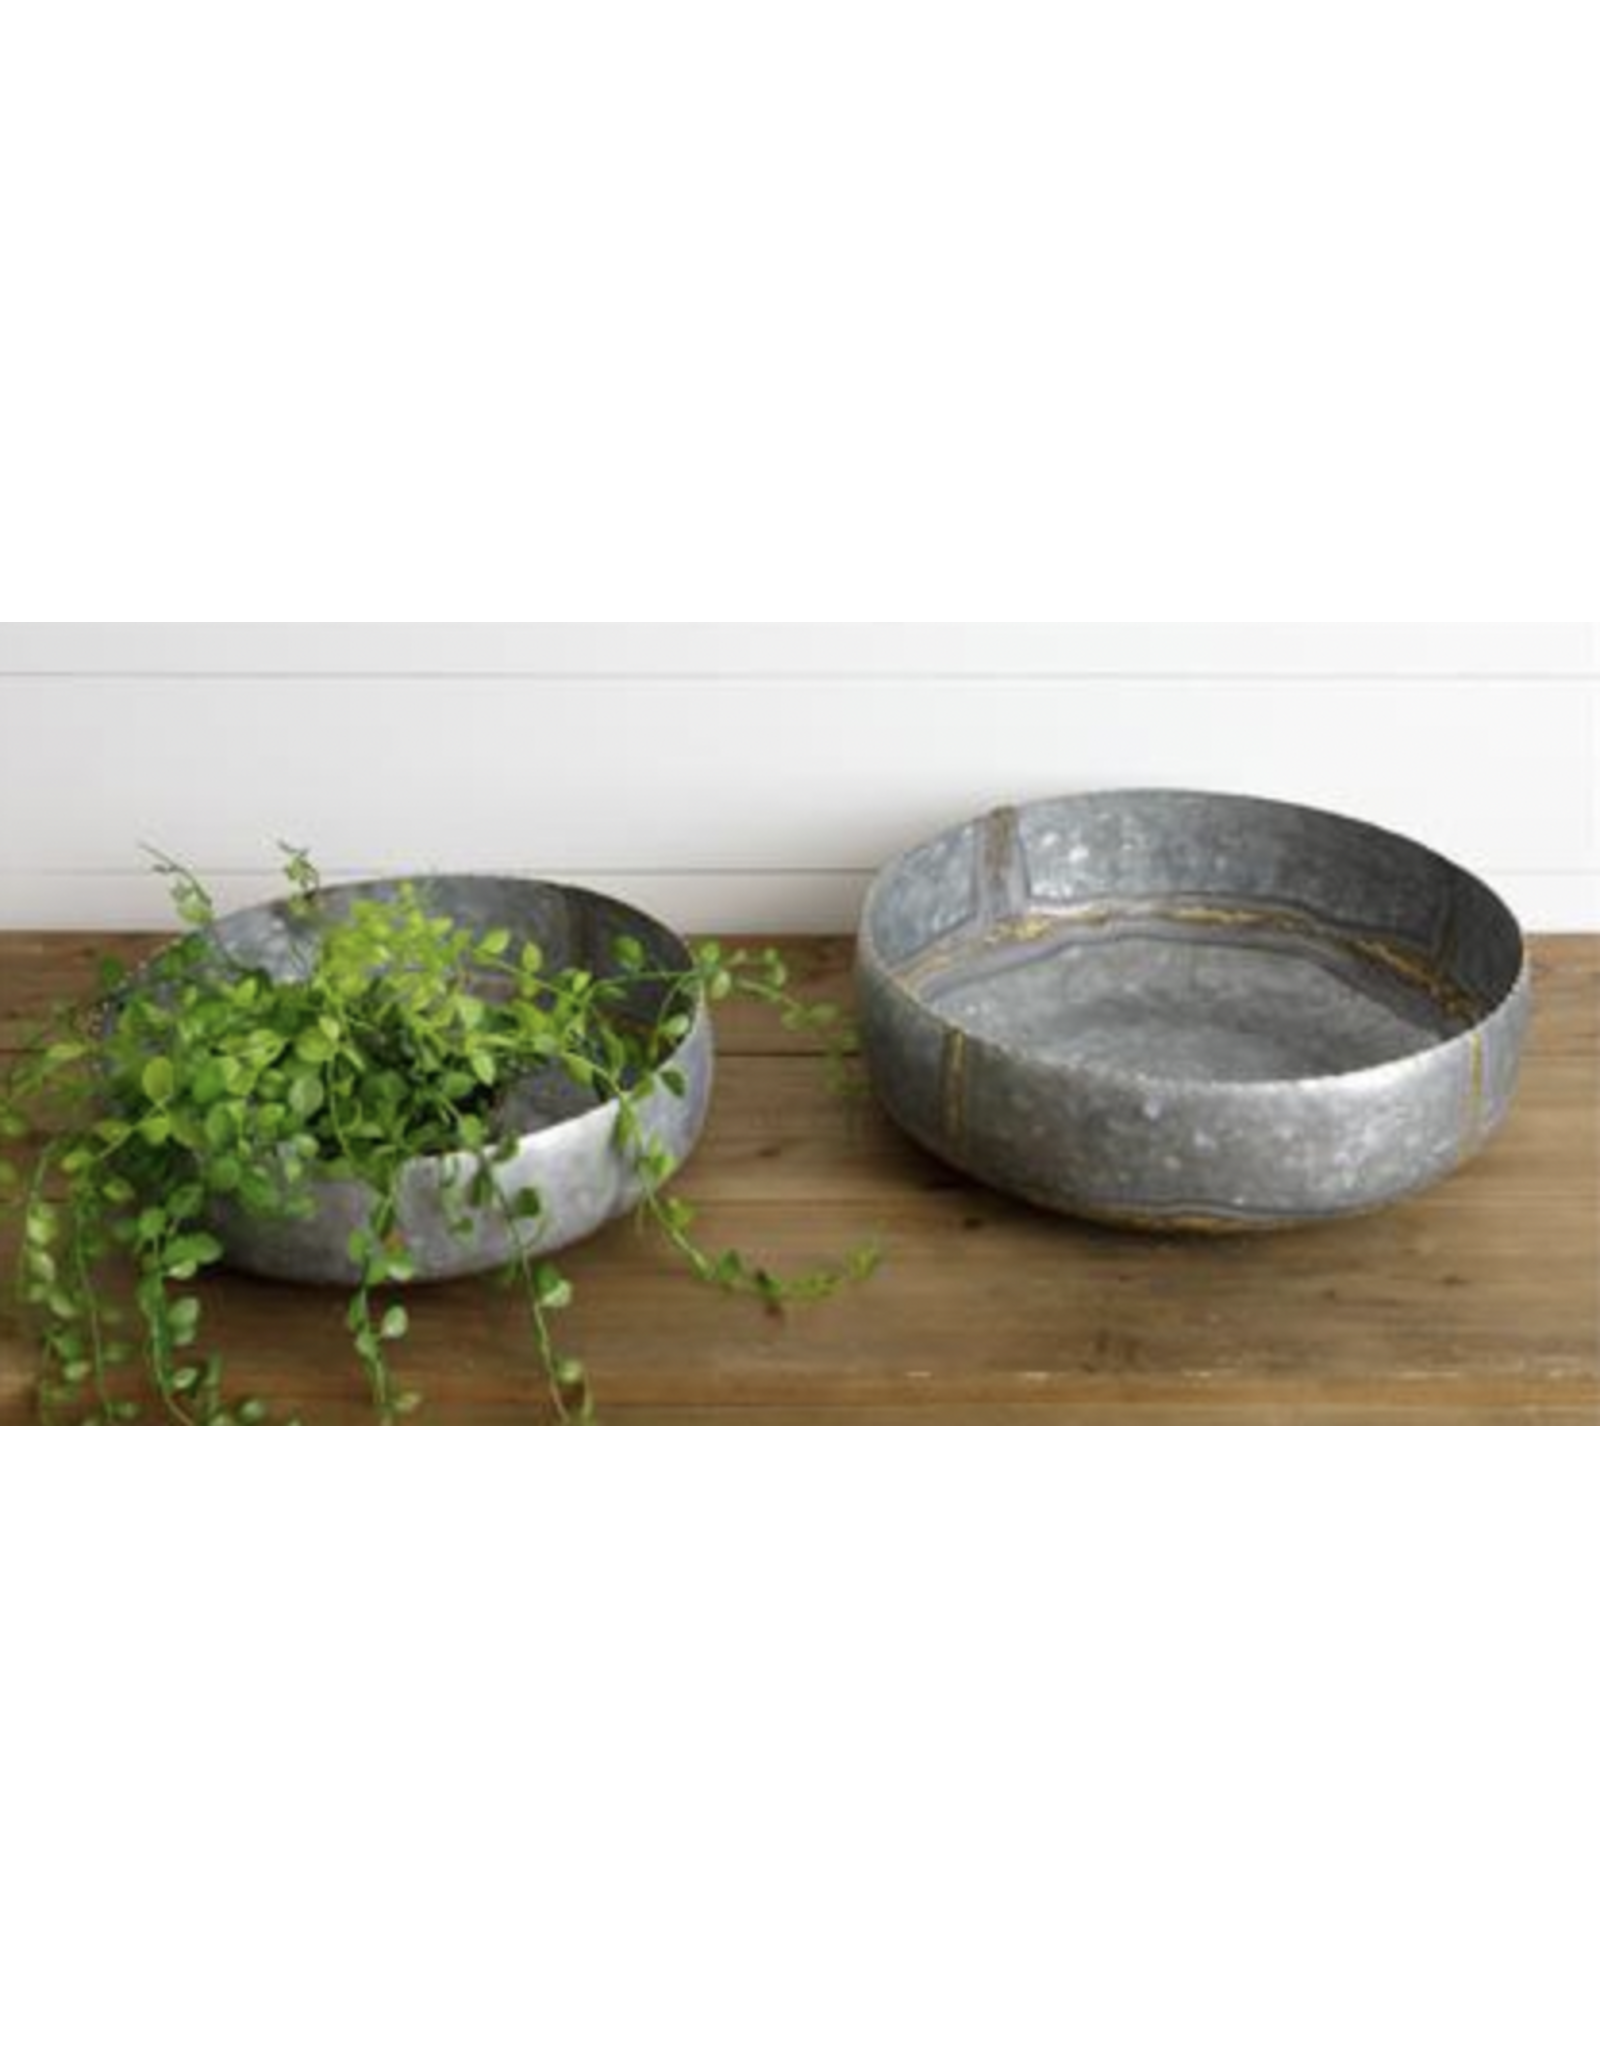 Audrey's Galvanized Bowl with Gold, Small